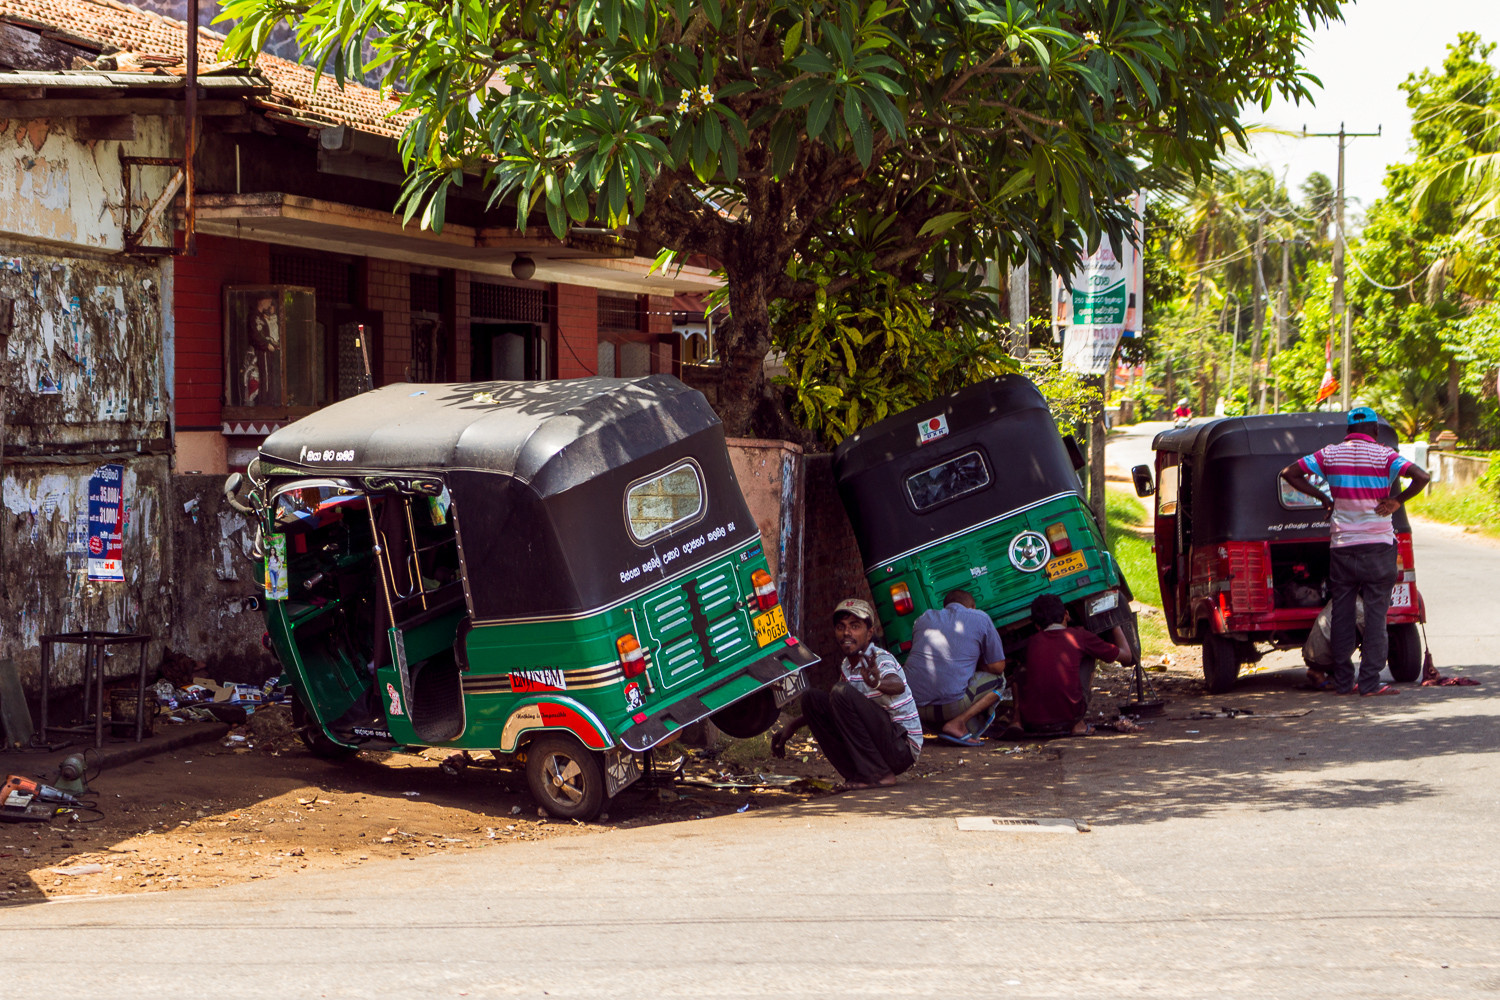 Tuk Tuk Repair by RJ Photo